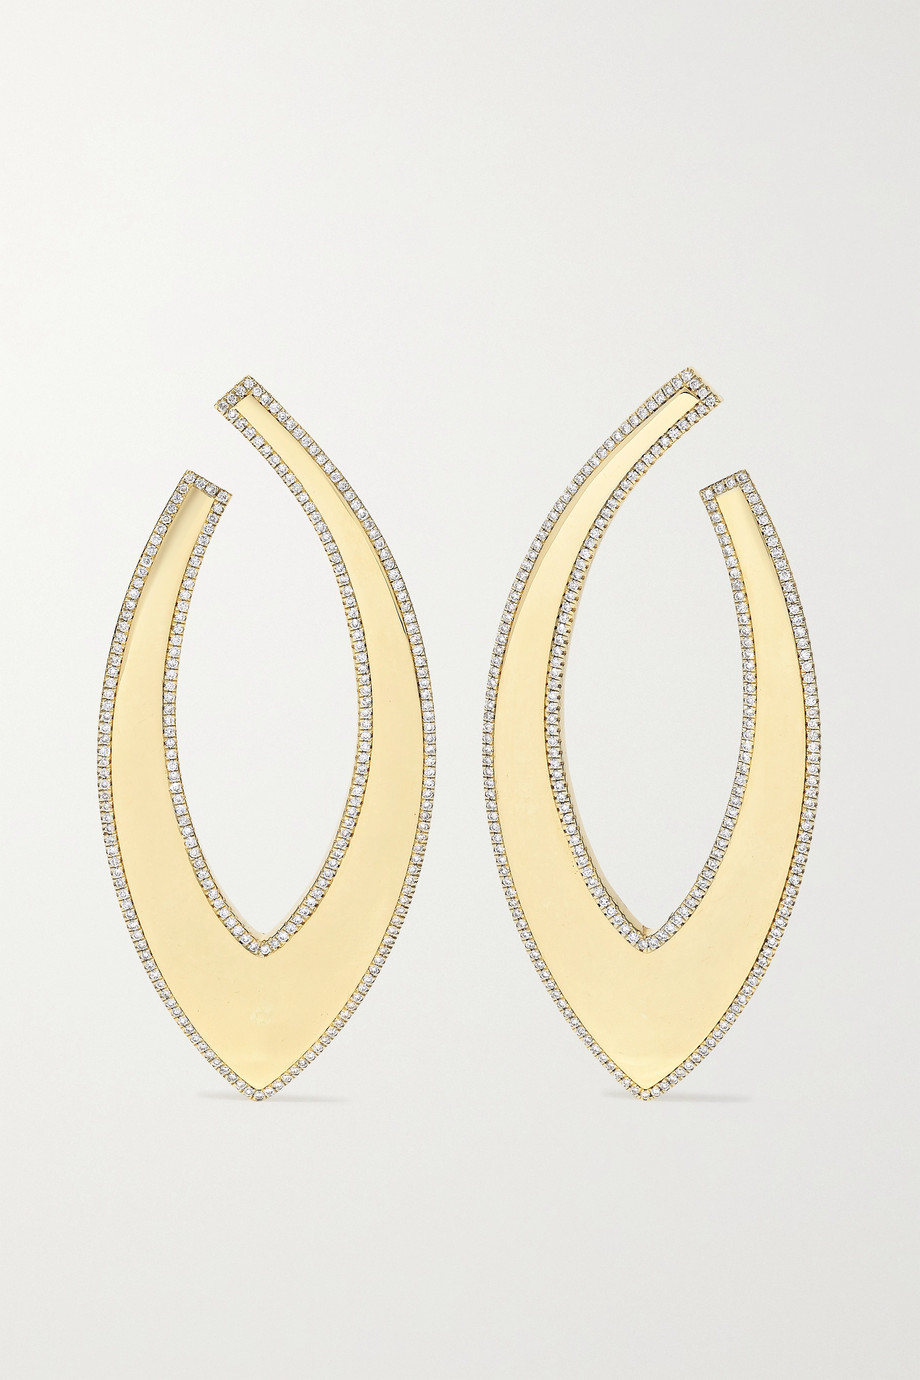 OFIRA Bevel 18-karat gold diamond earrings